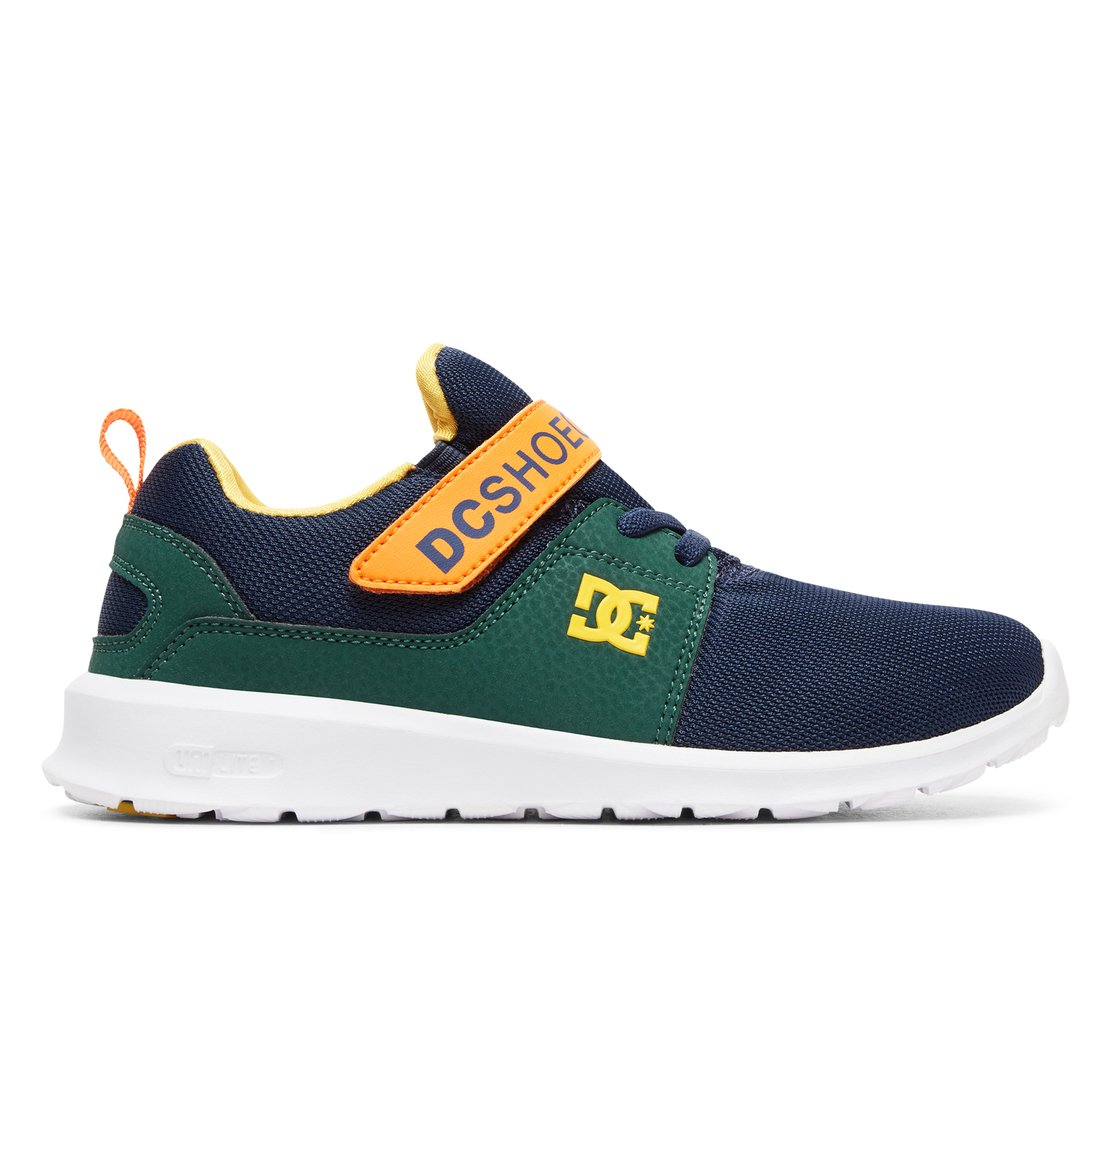 df7b785dd2da6 0 Heathrow EV - Zapatillas con Cordones Elásticos para Chicos Gris  ADBS700061 DC Shoes